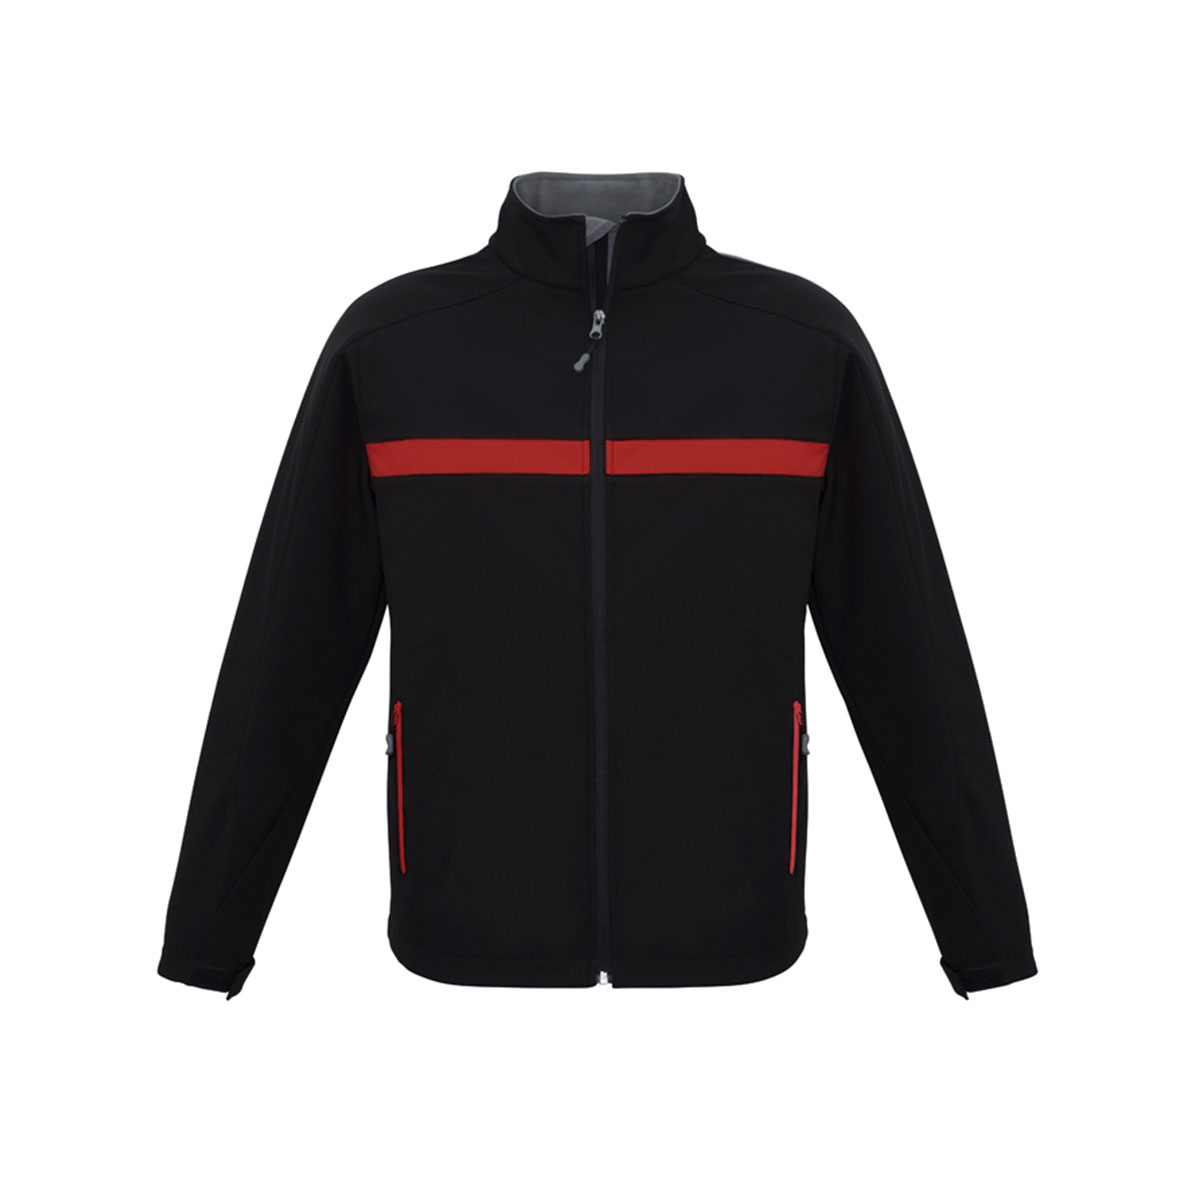 Unisex Charger Jacket-Black / Red / Grey